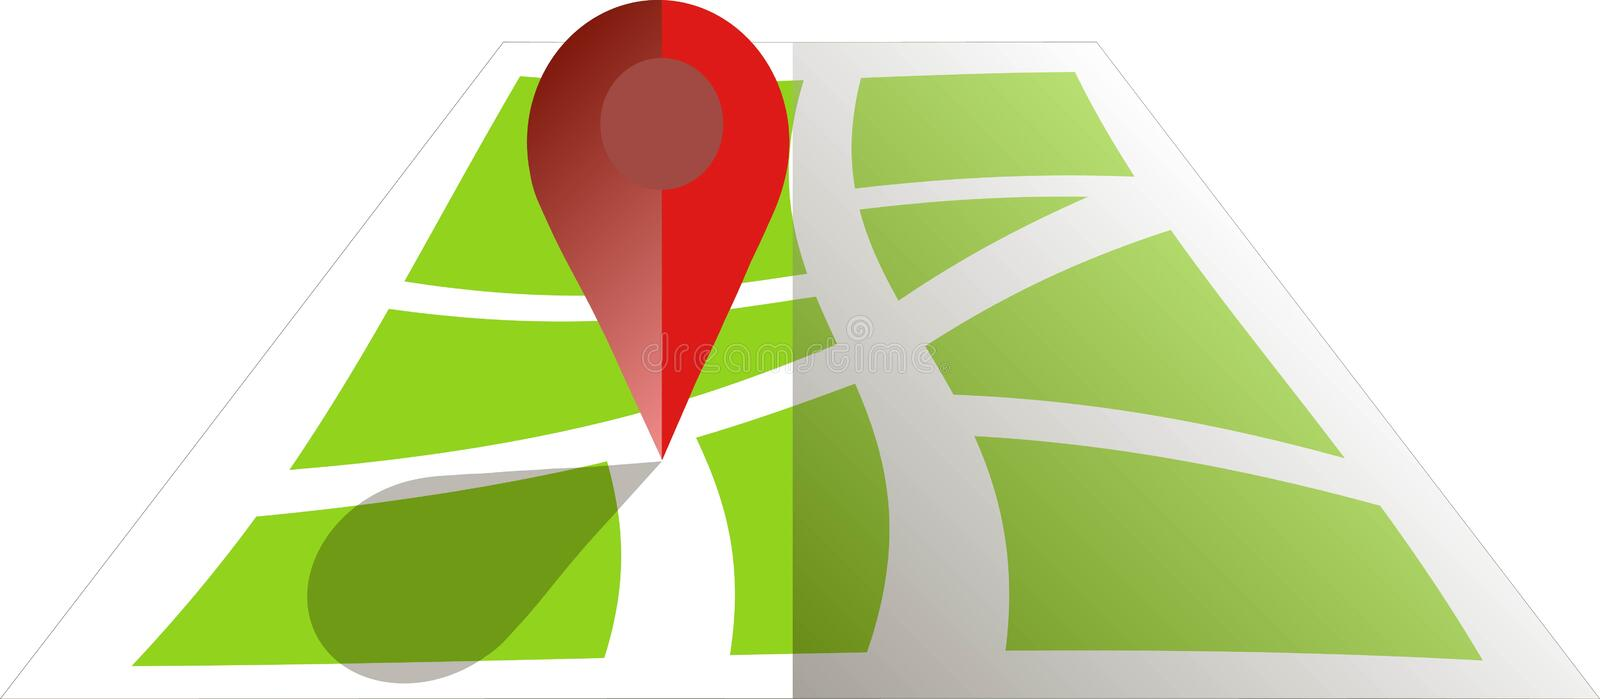 Stylised green map with red GPS dot. Flat design, object on white, design element. Vector stock illustration